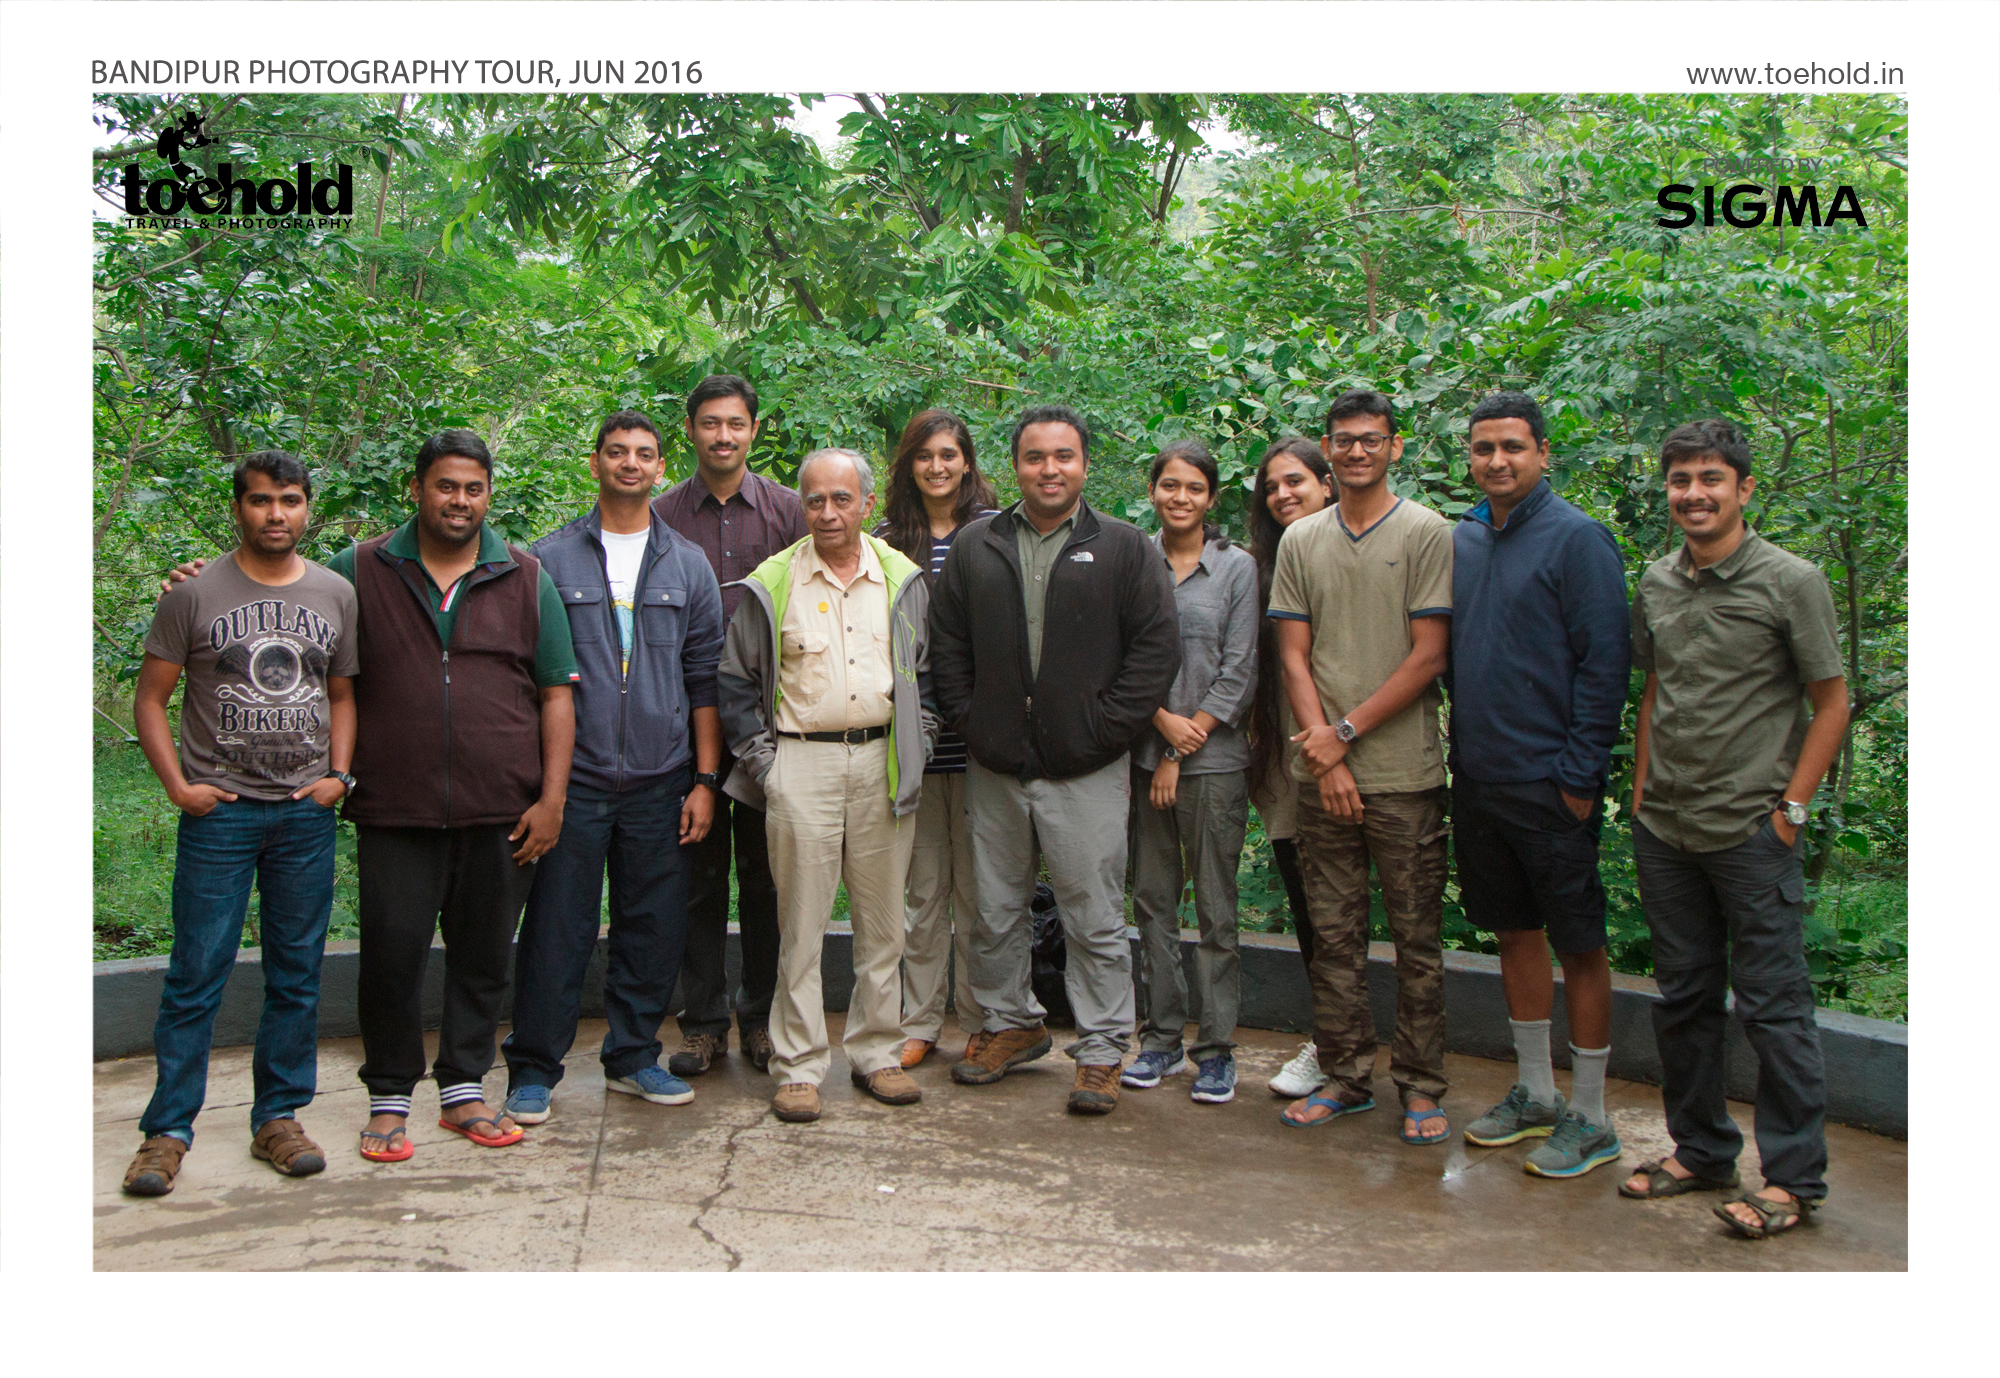 Participants of the Bandipur Photo Tour with Skipper Phillip Ross